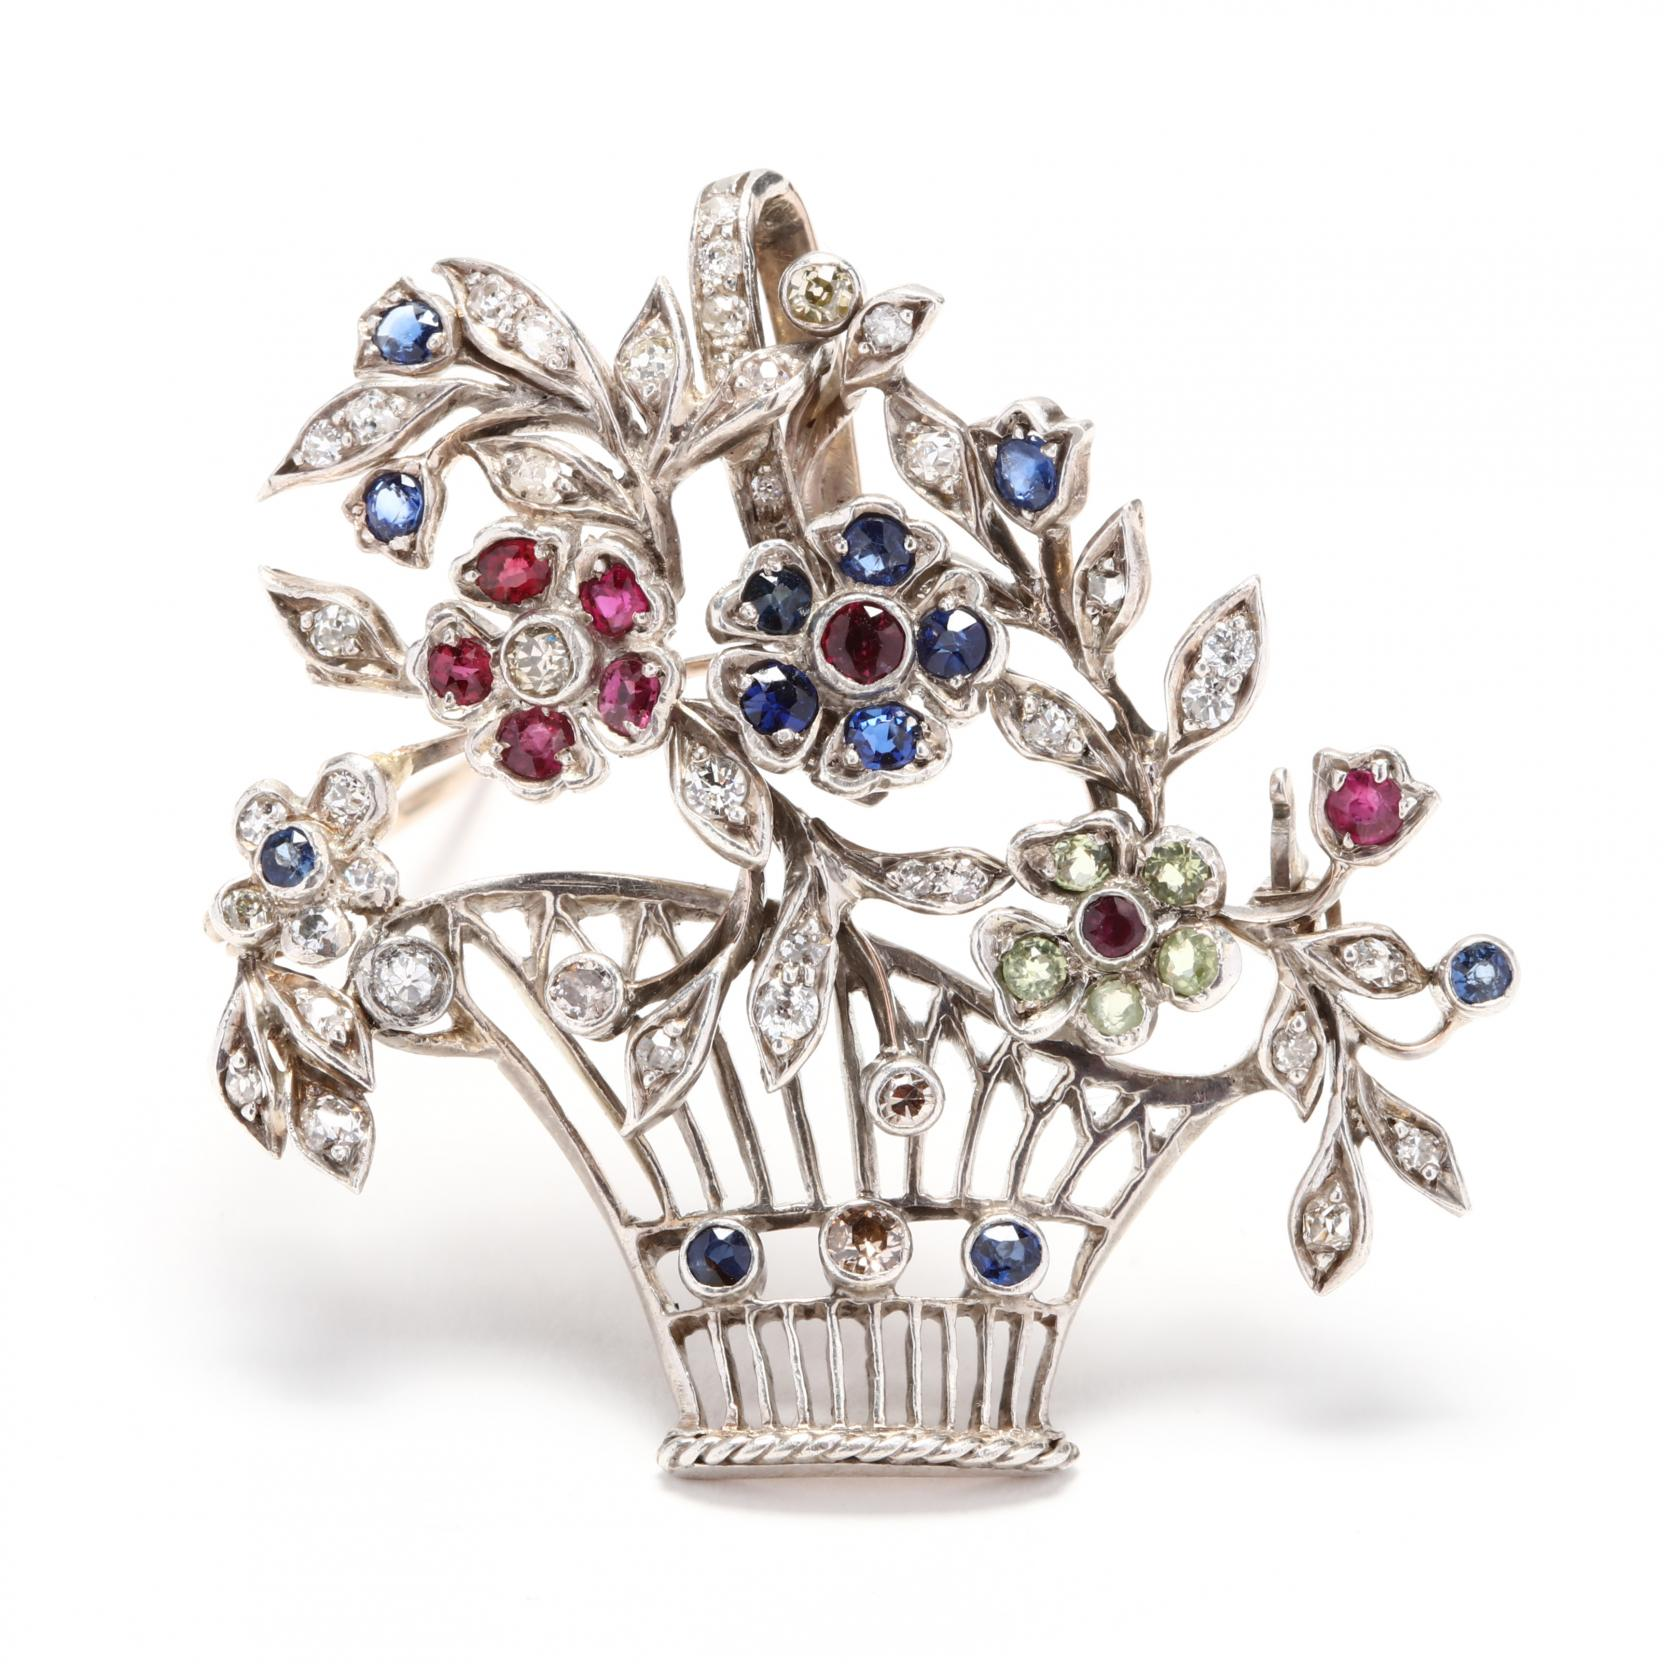 vintage-silver-gem-set-flower-basket-brooch